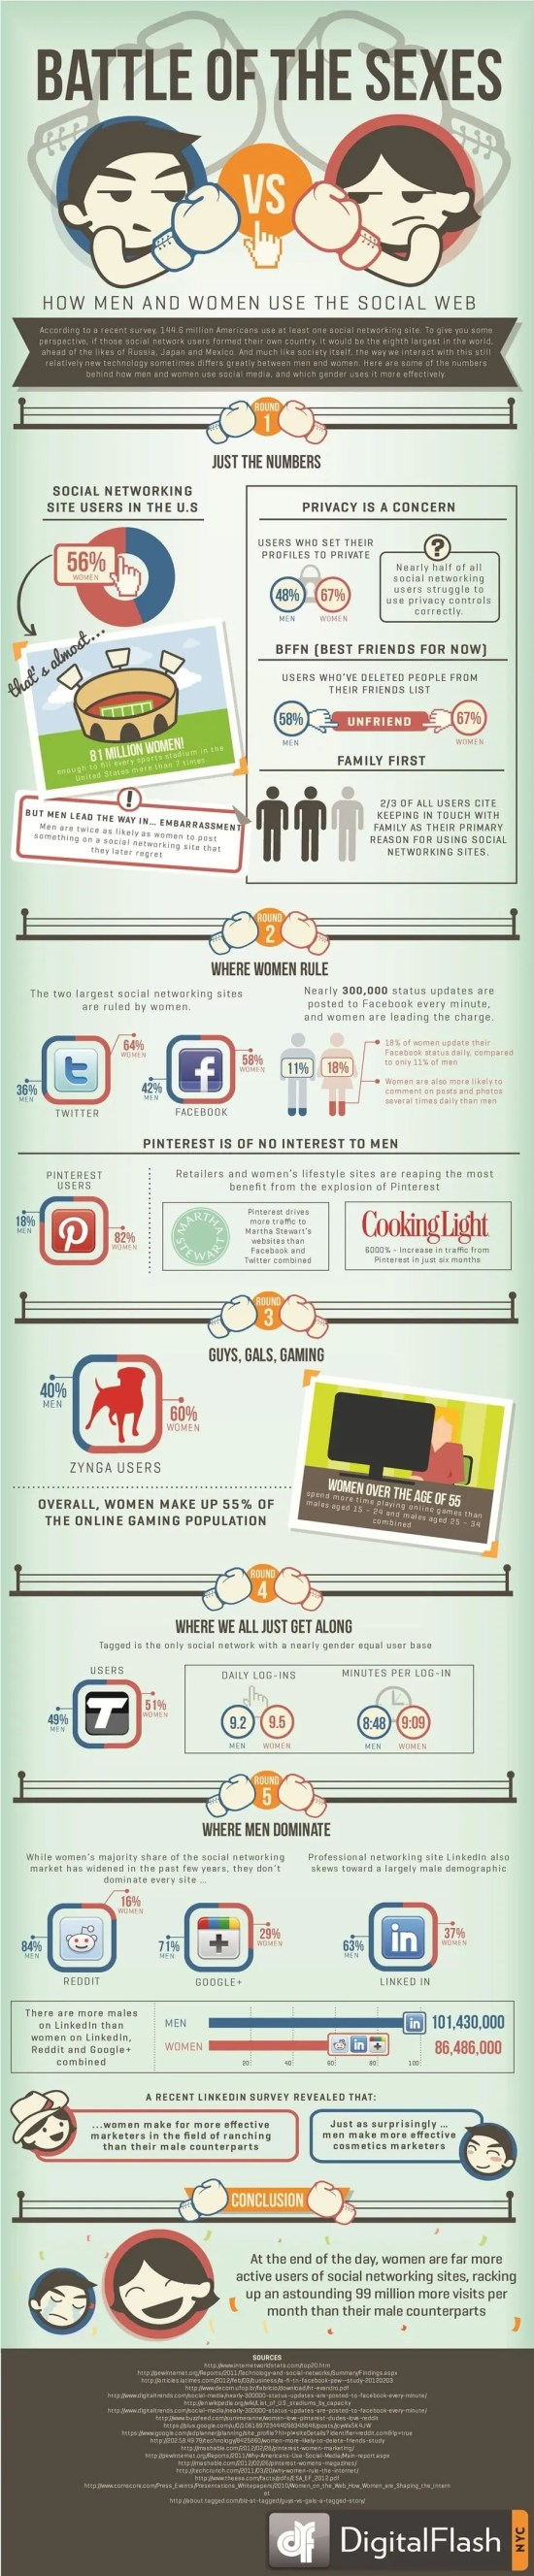 Infographic: Battle of the Sexes - How Men And Women Use The Social Web